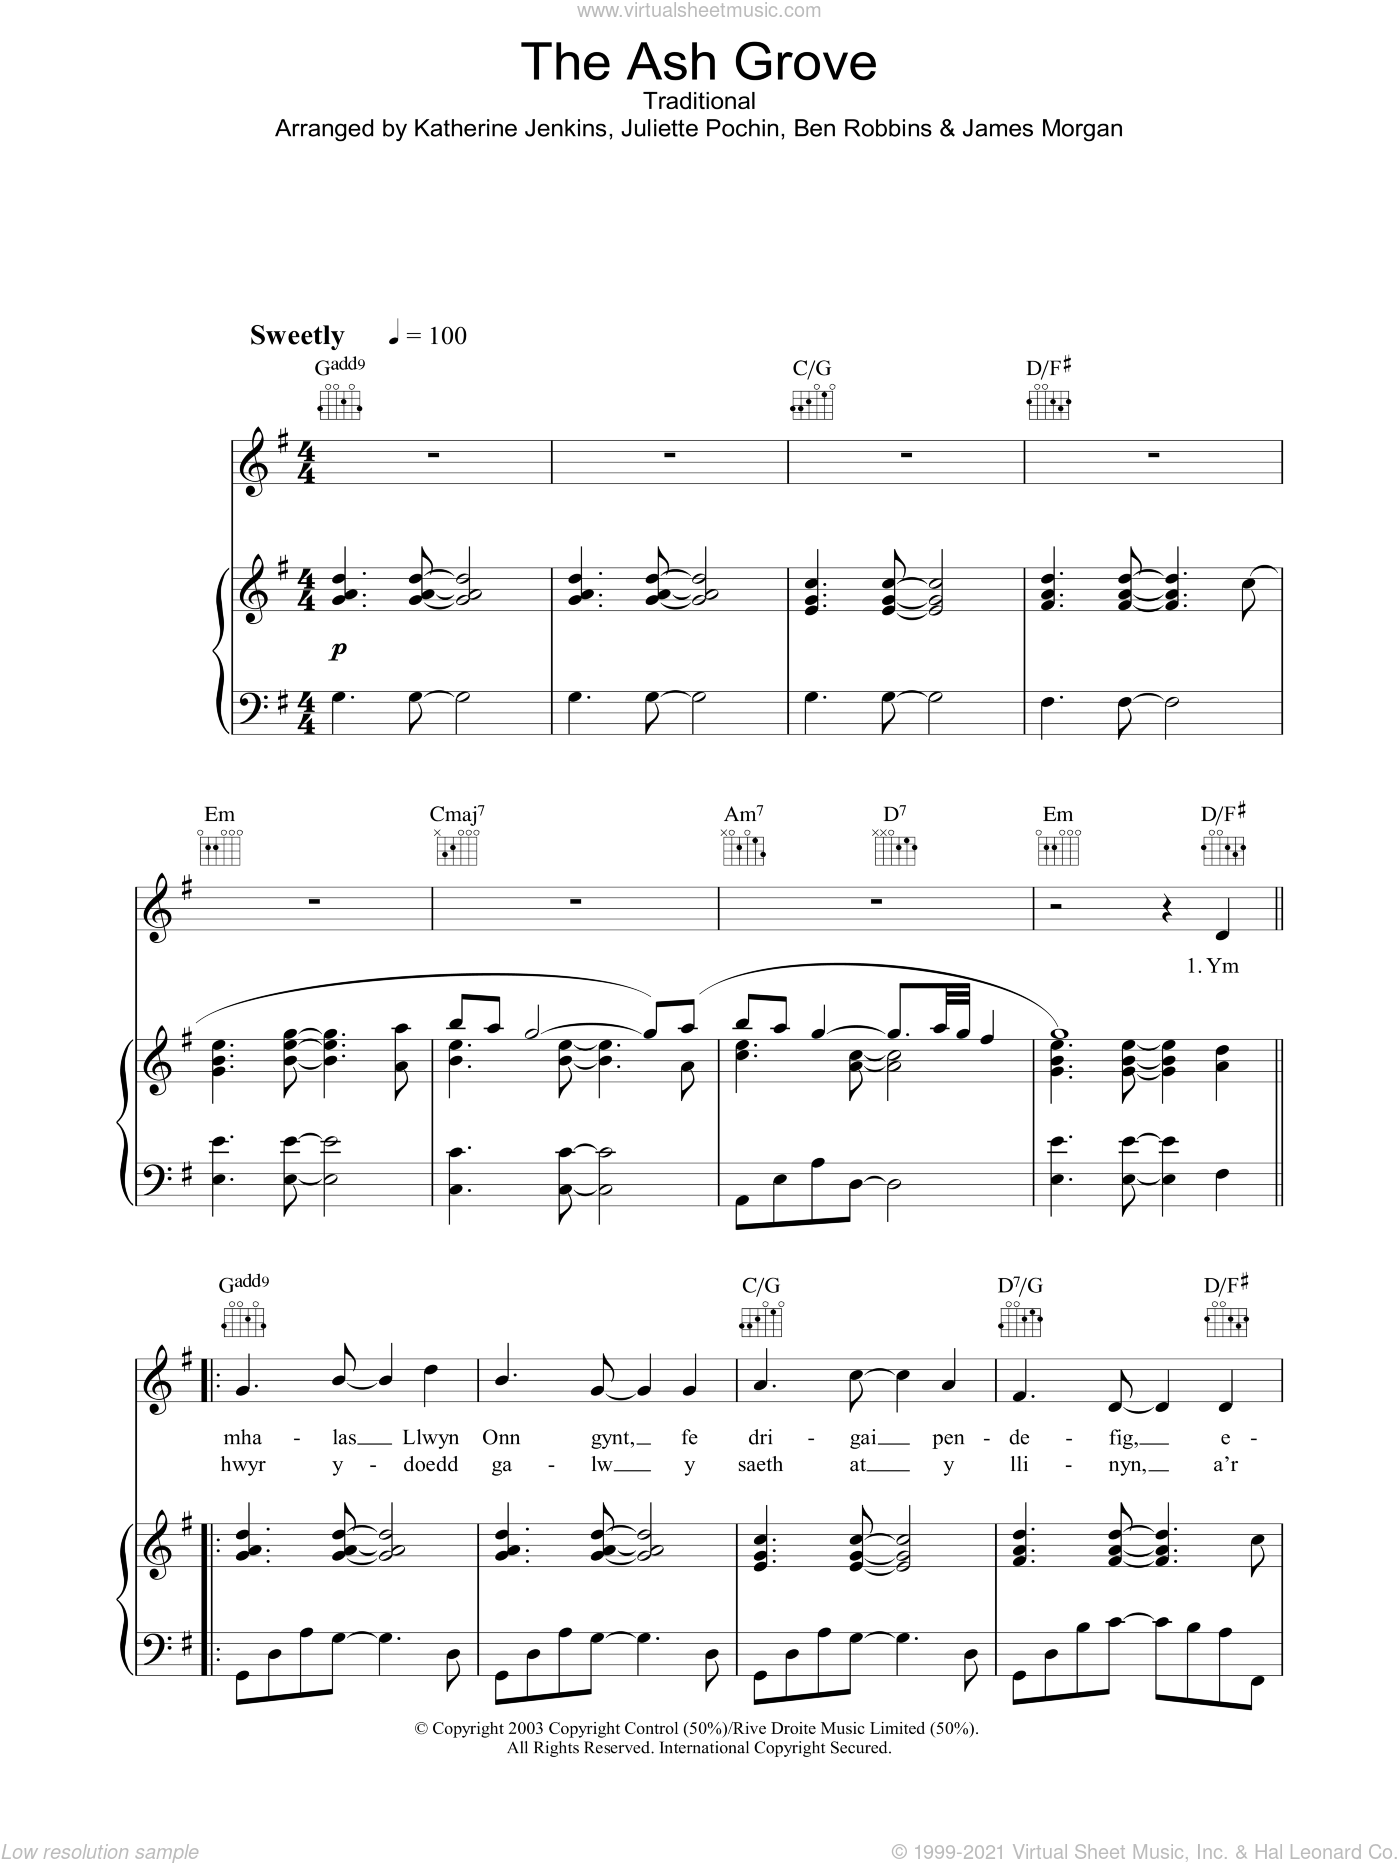 The Ash Grove sheet music for voice, piano or guitar. Score Image Preview.